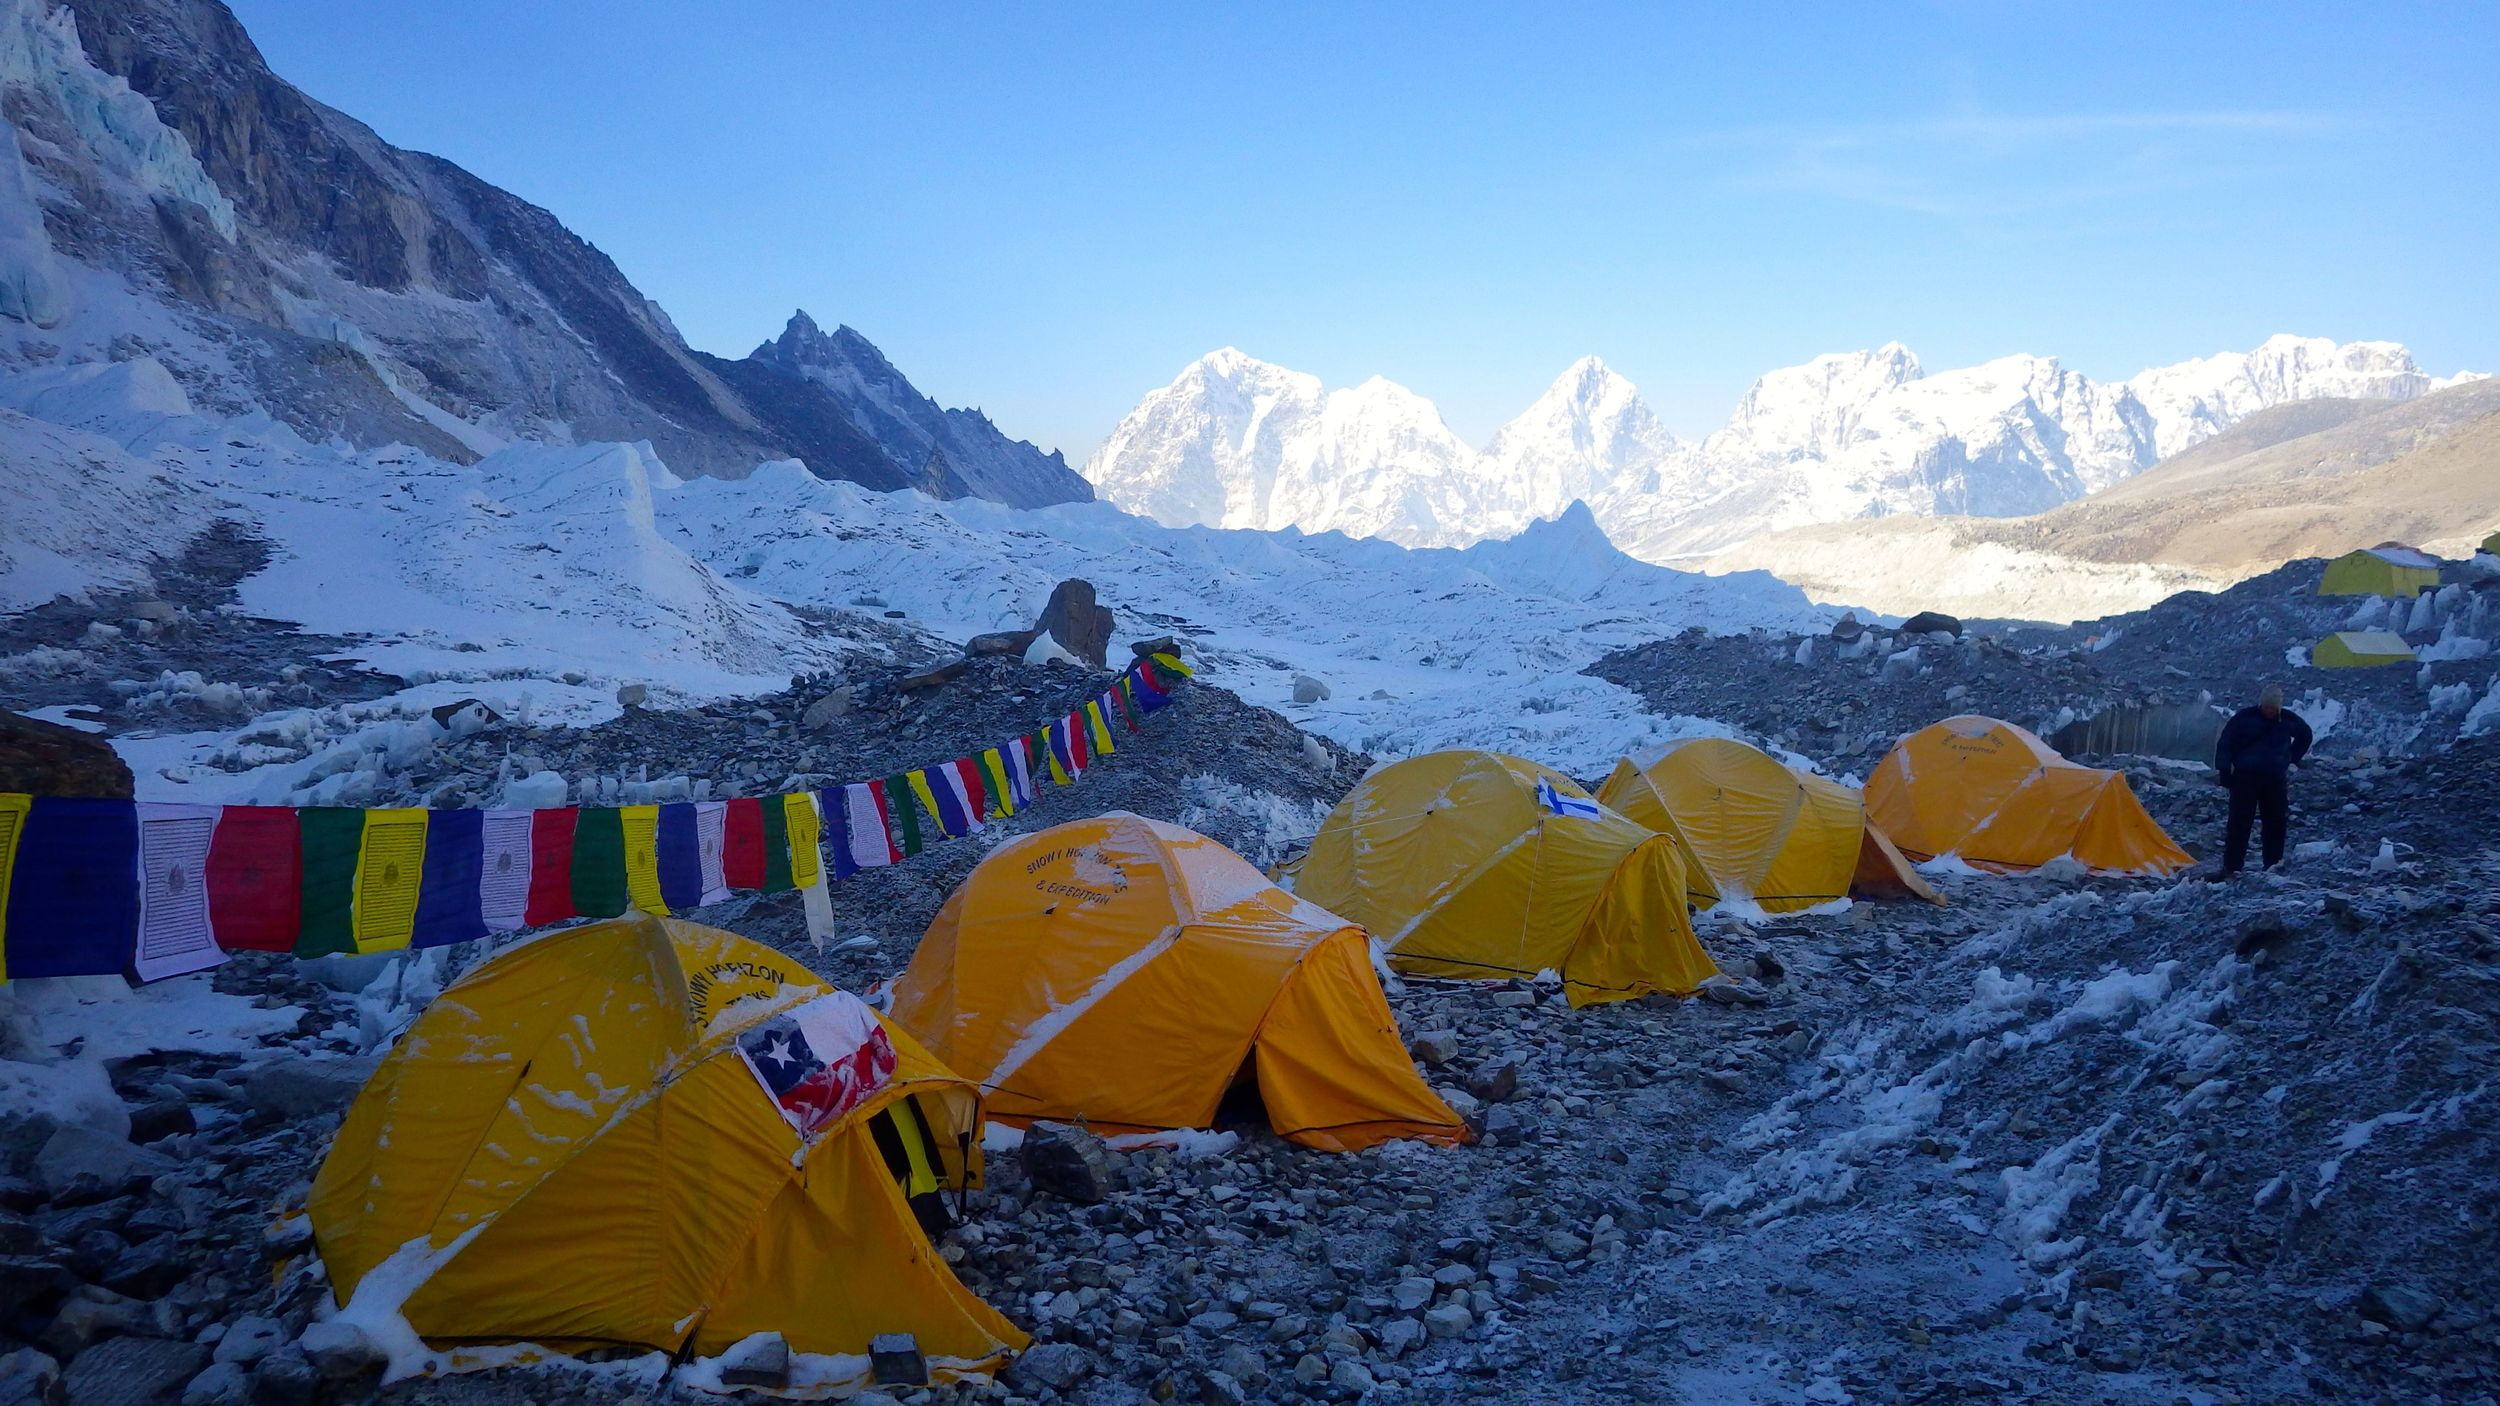 Our tents up in Everest Base Camp, Mine is the third, with the Finnish flag.